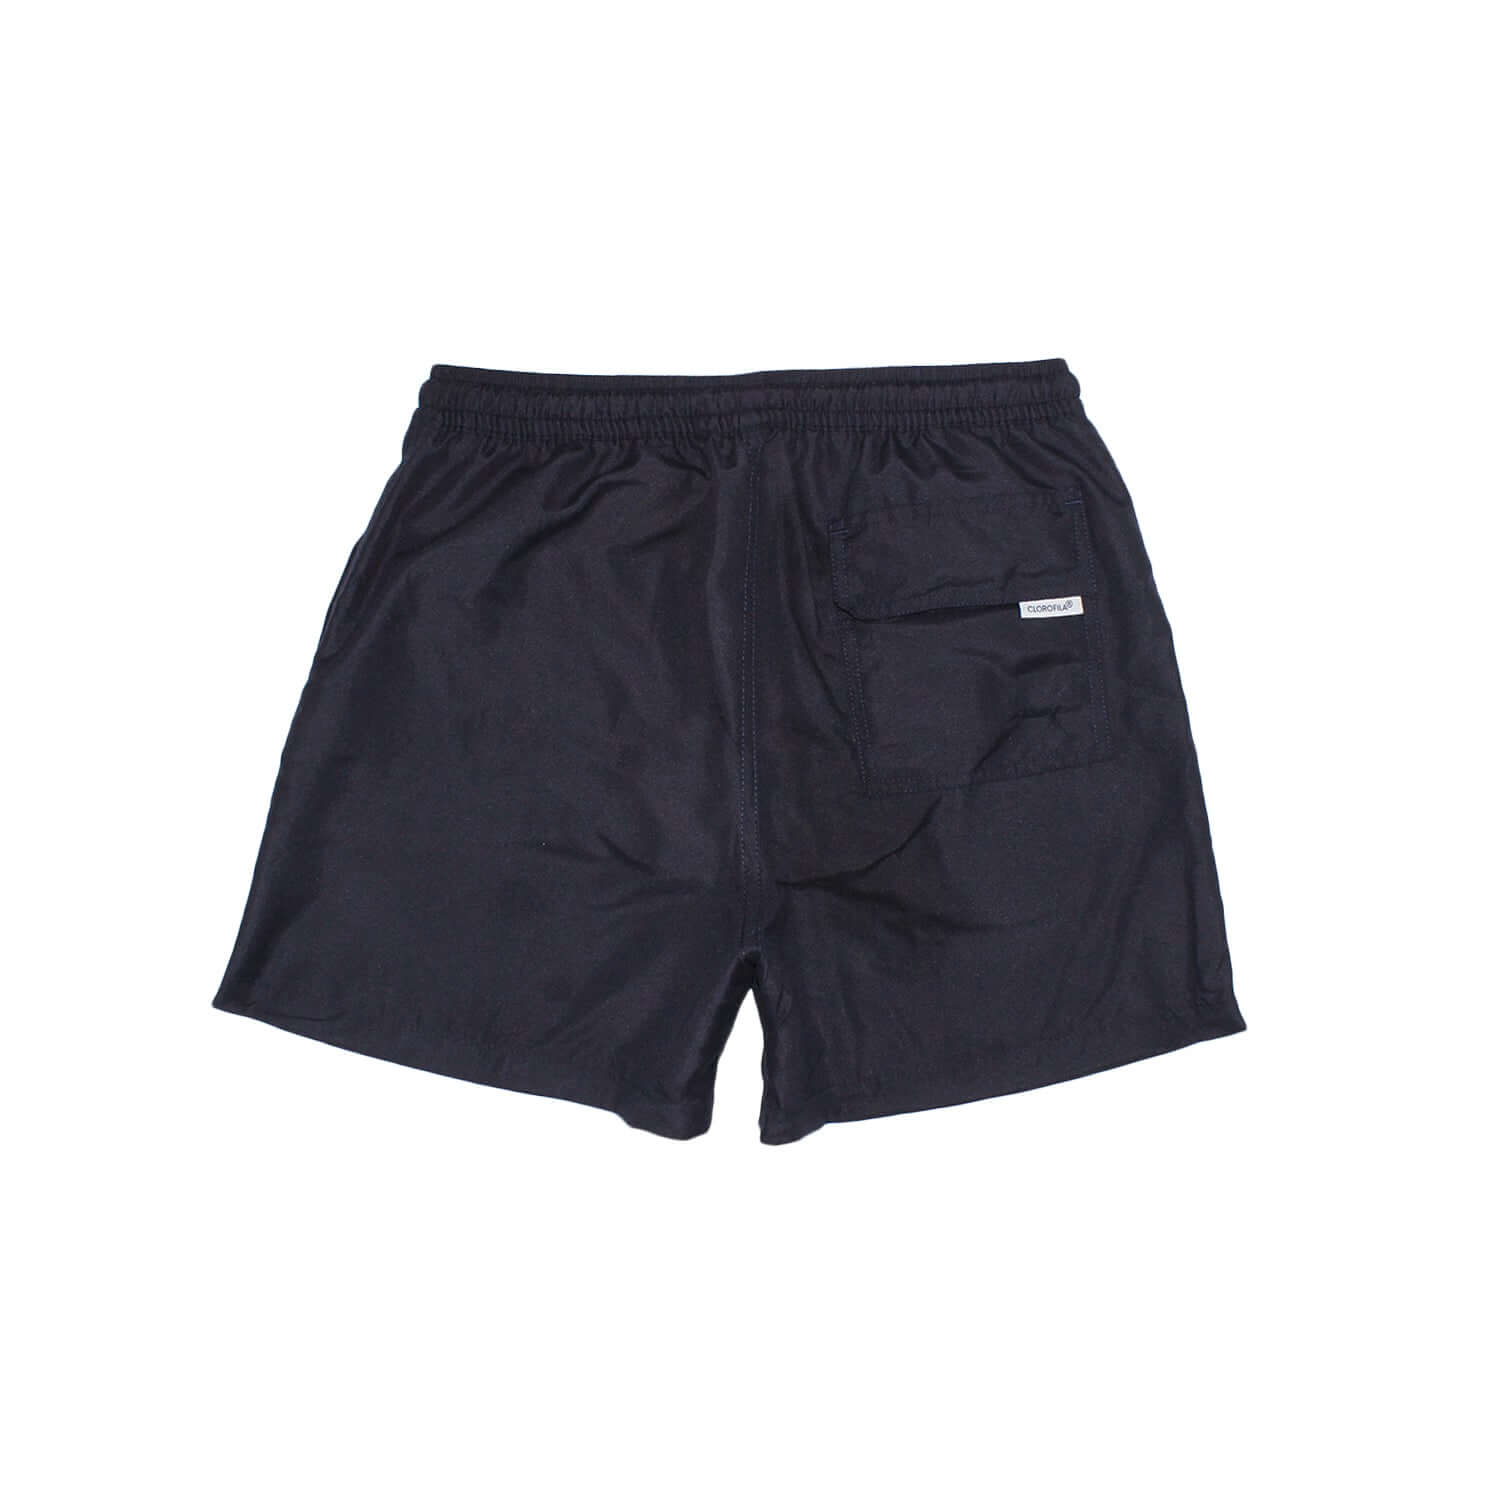 SOLID NAVY - Clorofila Sea Wear